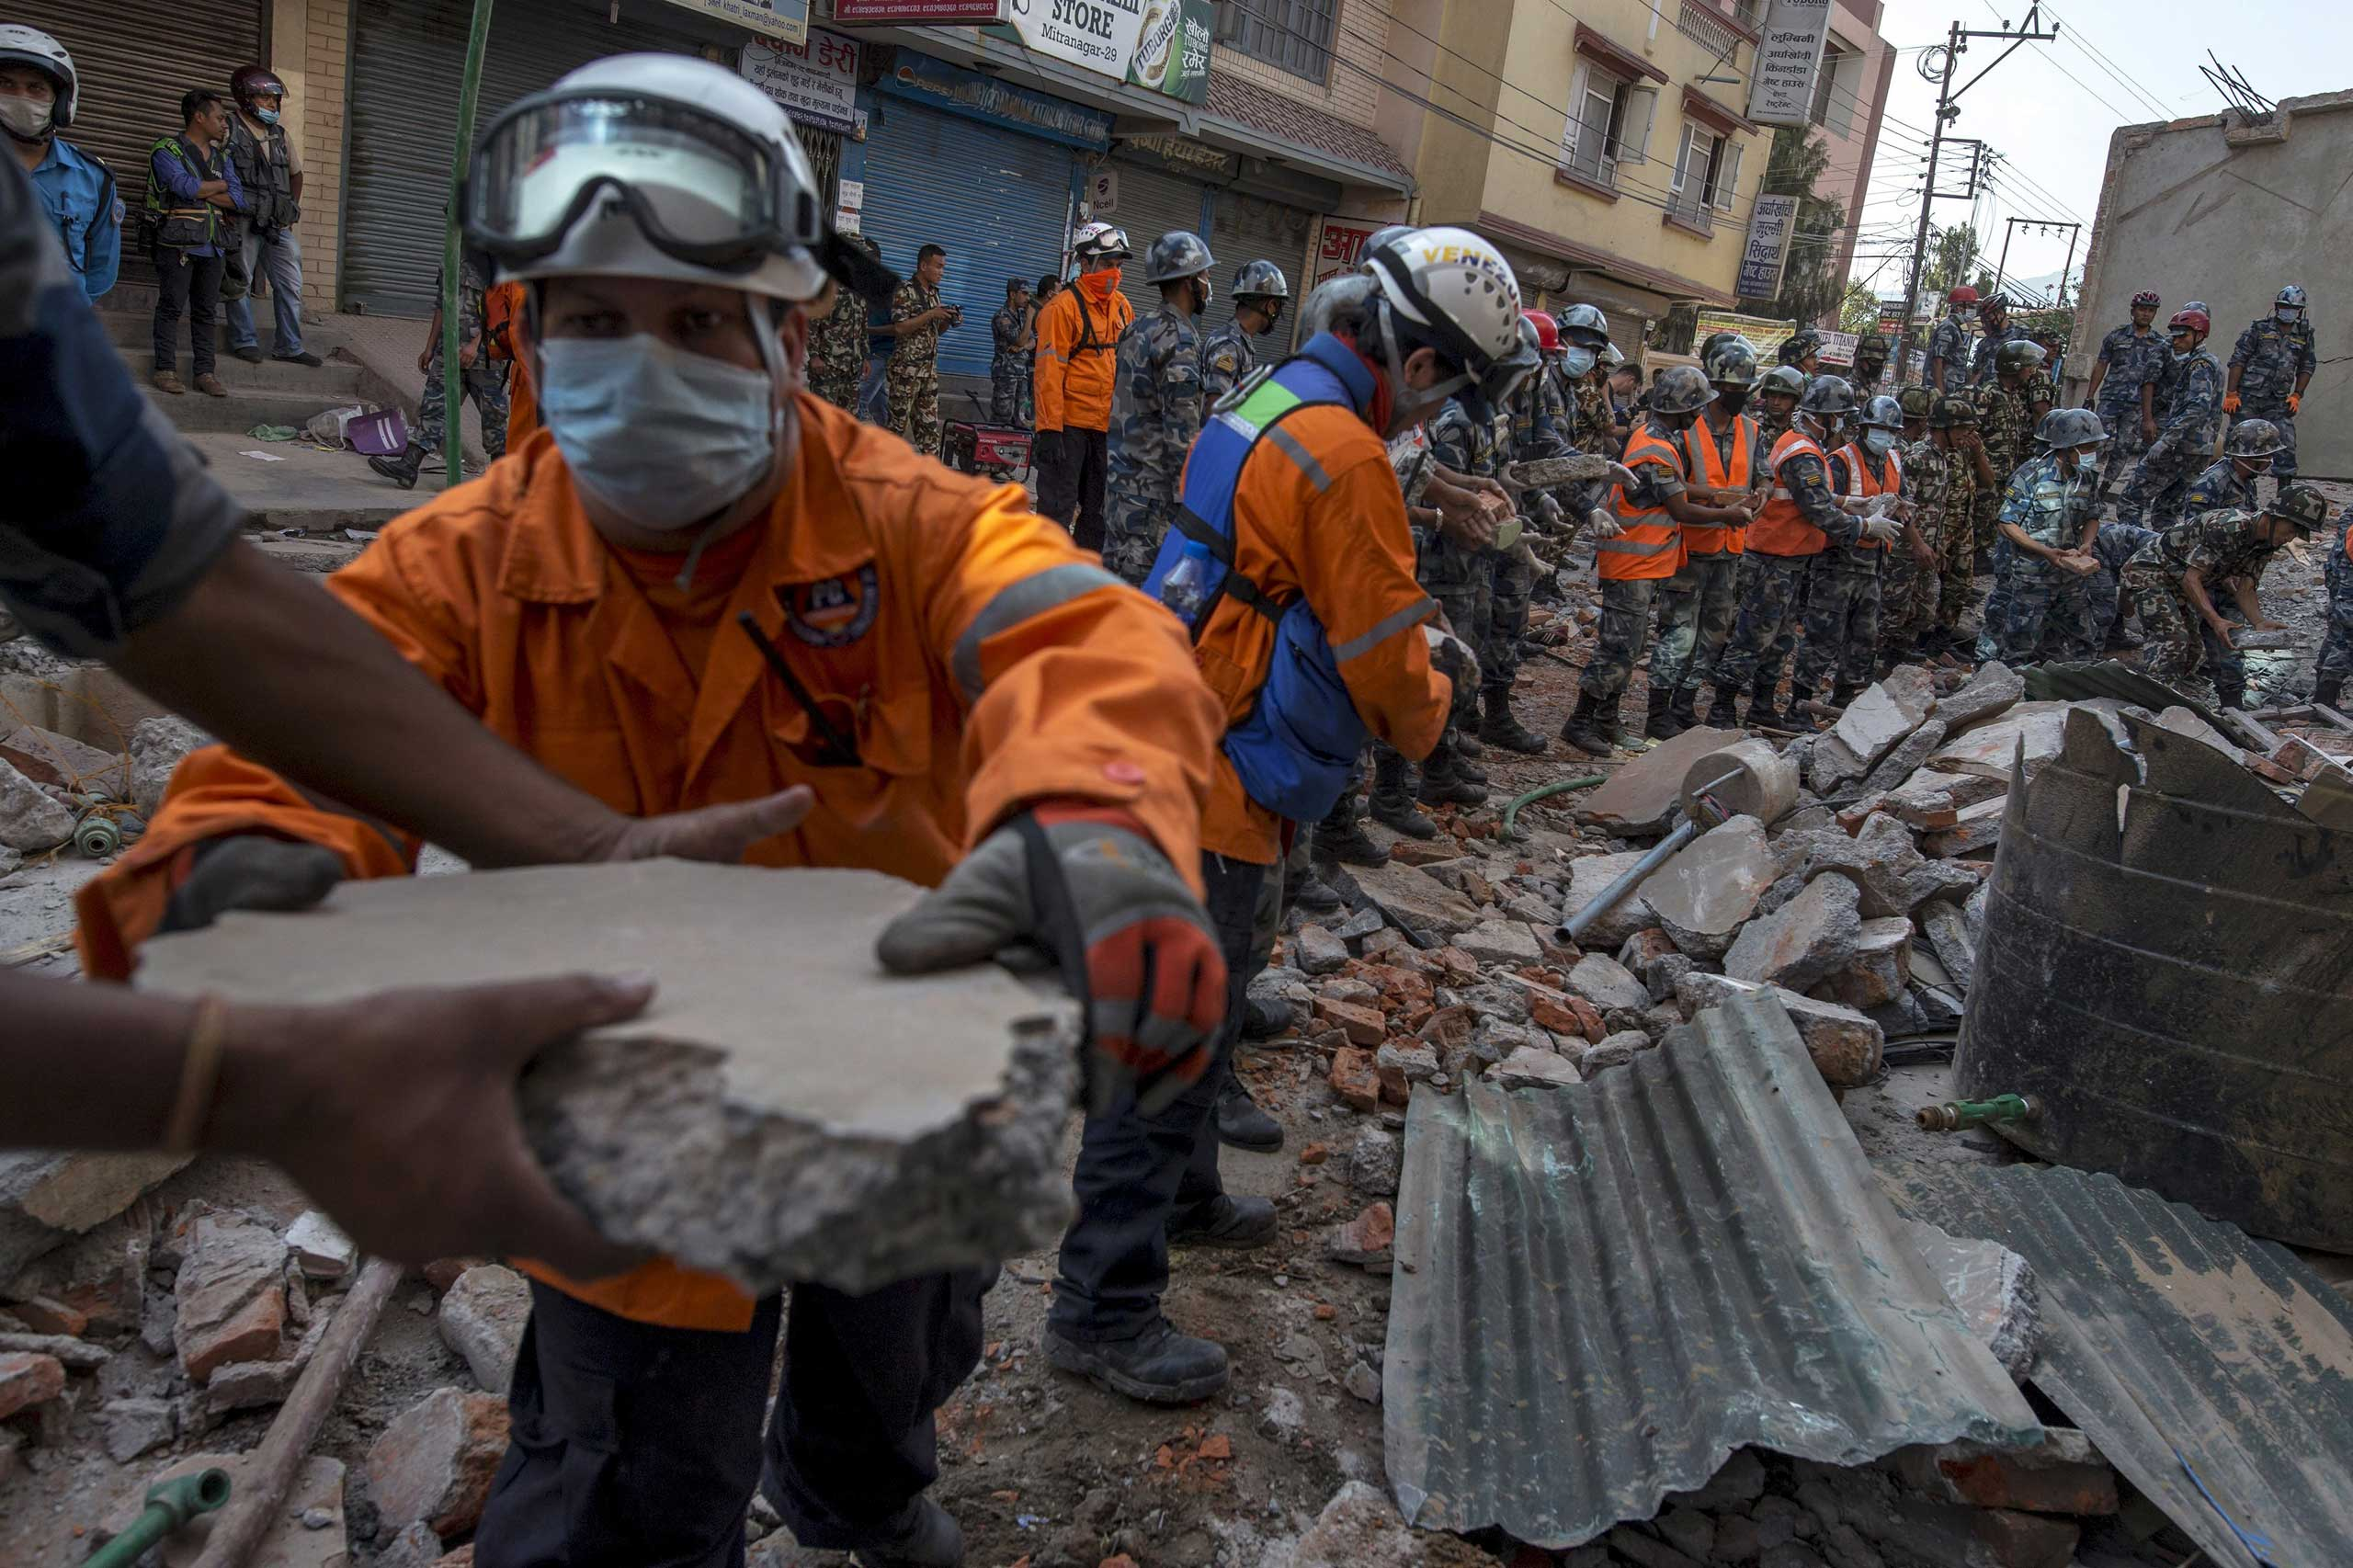 Nepalese military personnel remove debris in search of survivors after a fresh 7.3 earthquake struck, in Kathmandu on May 12, 2015.